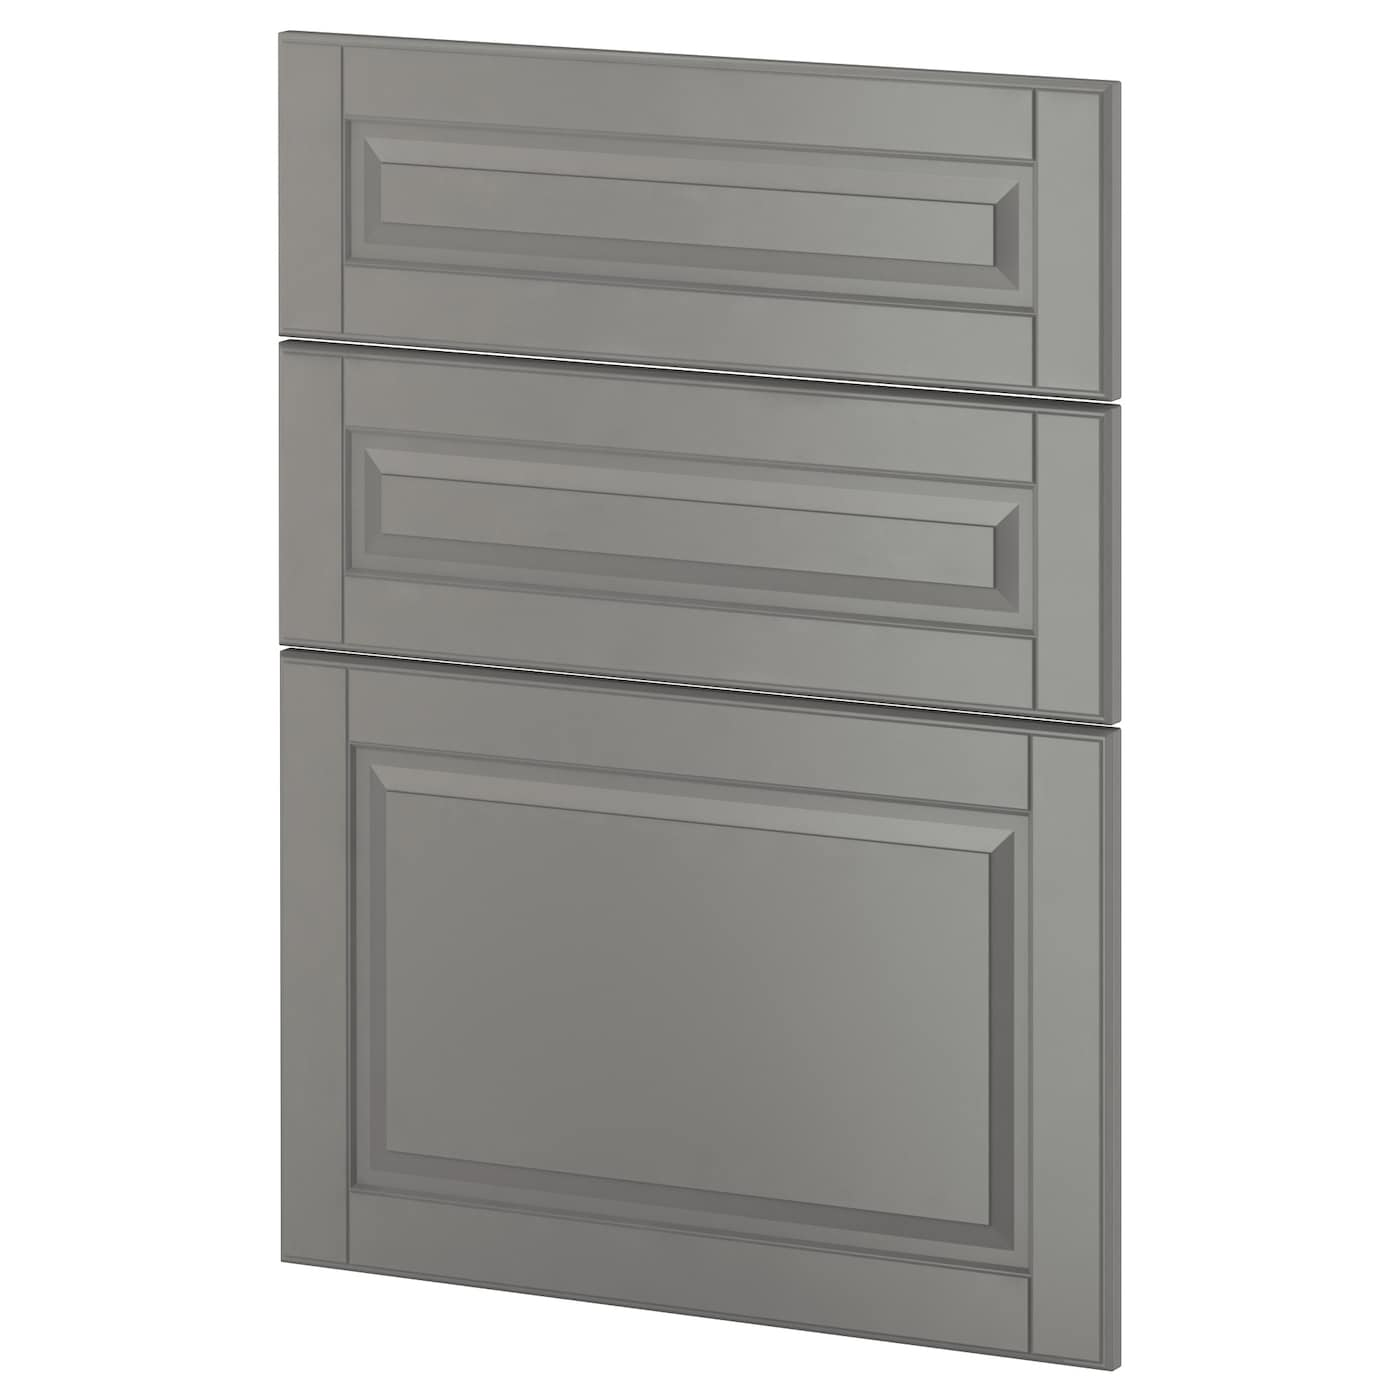 kitchen cabinet doors ikea metod 3 fronts for dishwasher bodbyn grey 60 cm ikea 5338